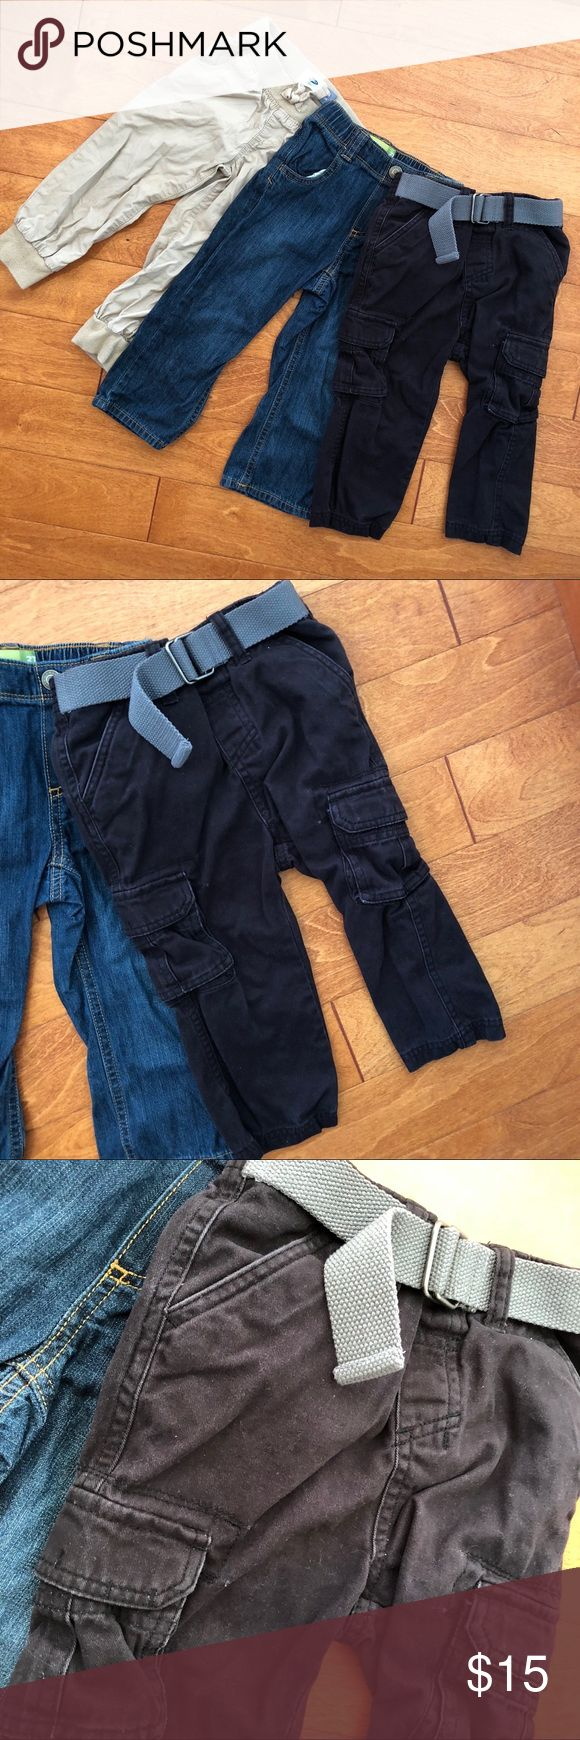 2T Boys Pants Lot, jeans, cargo pants, parachute The jeans and the parachute pants (super light weight!) are both 2T and the black cargo pants are 24 months.  Gently used. Clean. No stains.  Bundle 5 items and get 30% off plus FREE shipping!  Just bundle it and offer $7 less than the discounted price :)  <Shipping is $7 or less>  I will accept! Old Navy Bottoms Jeans